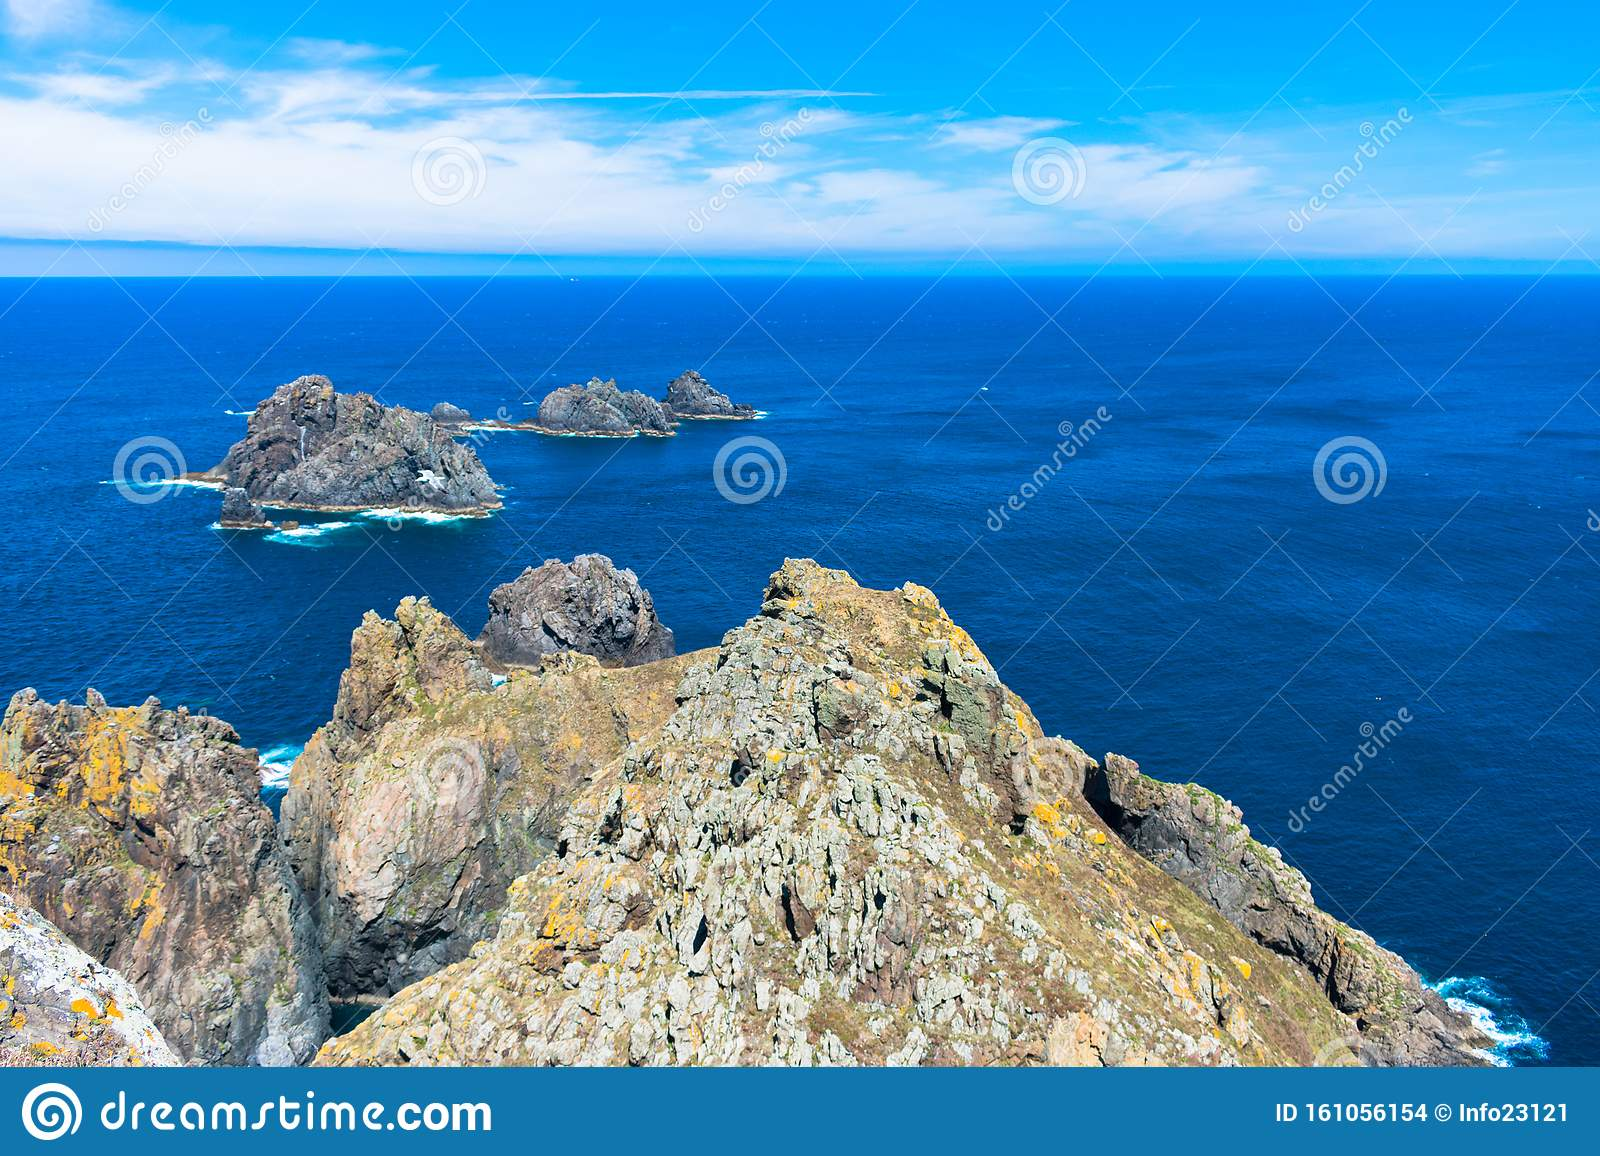 Rock Cliff In The Ocean With Blue Water And Sunny Sky Stock Photo Image Of Dream Relax 161056154